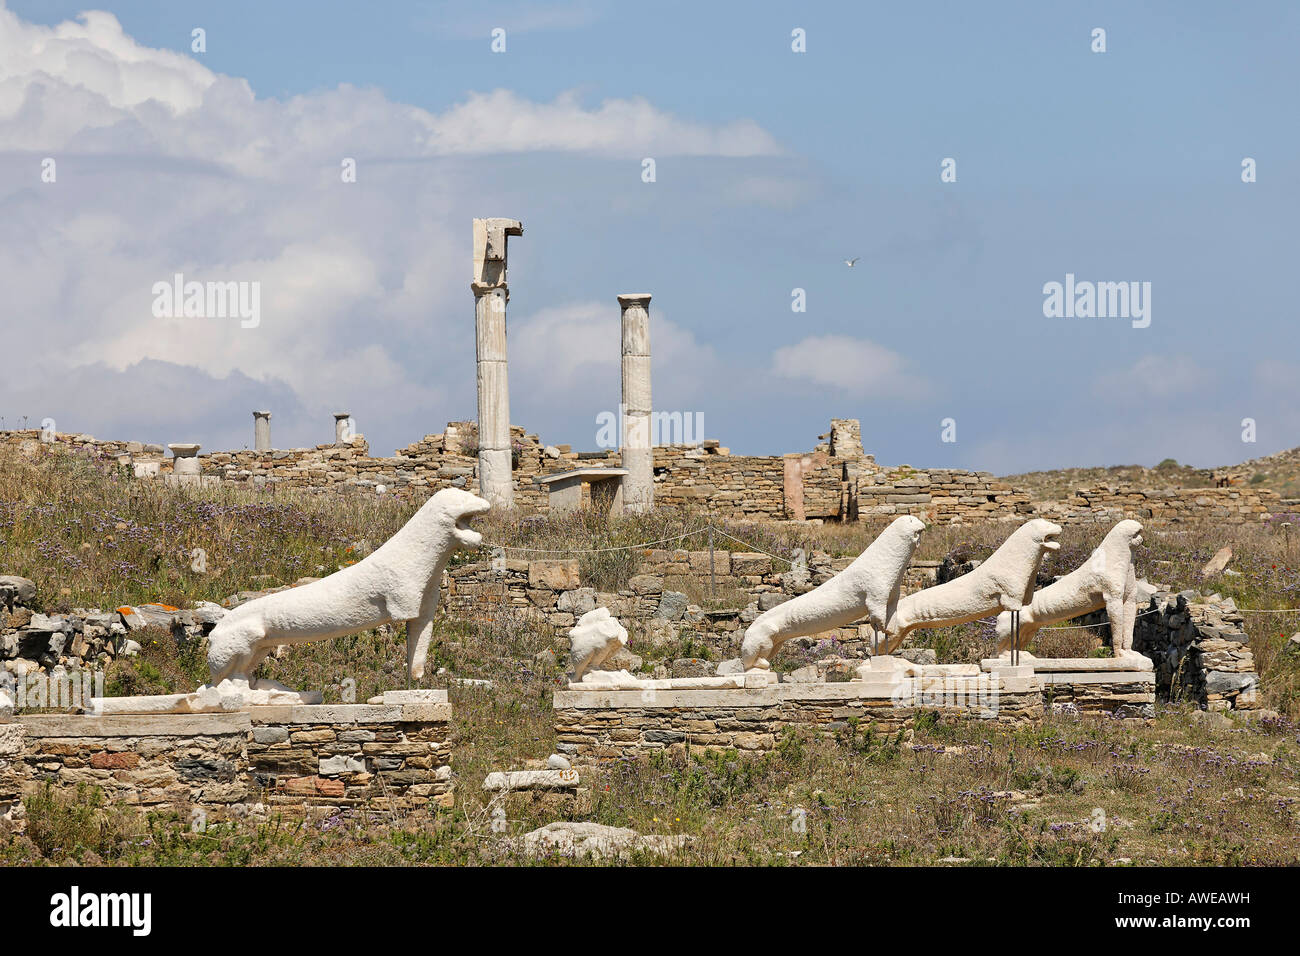 Archaic statues of lions, Delos, Greece - Stock Image